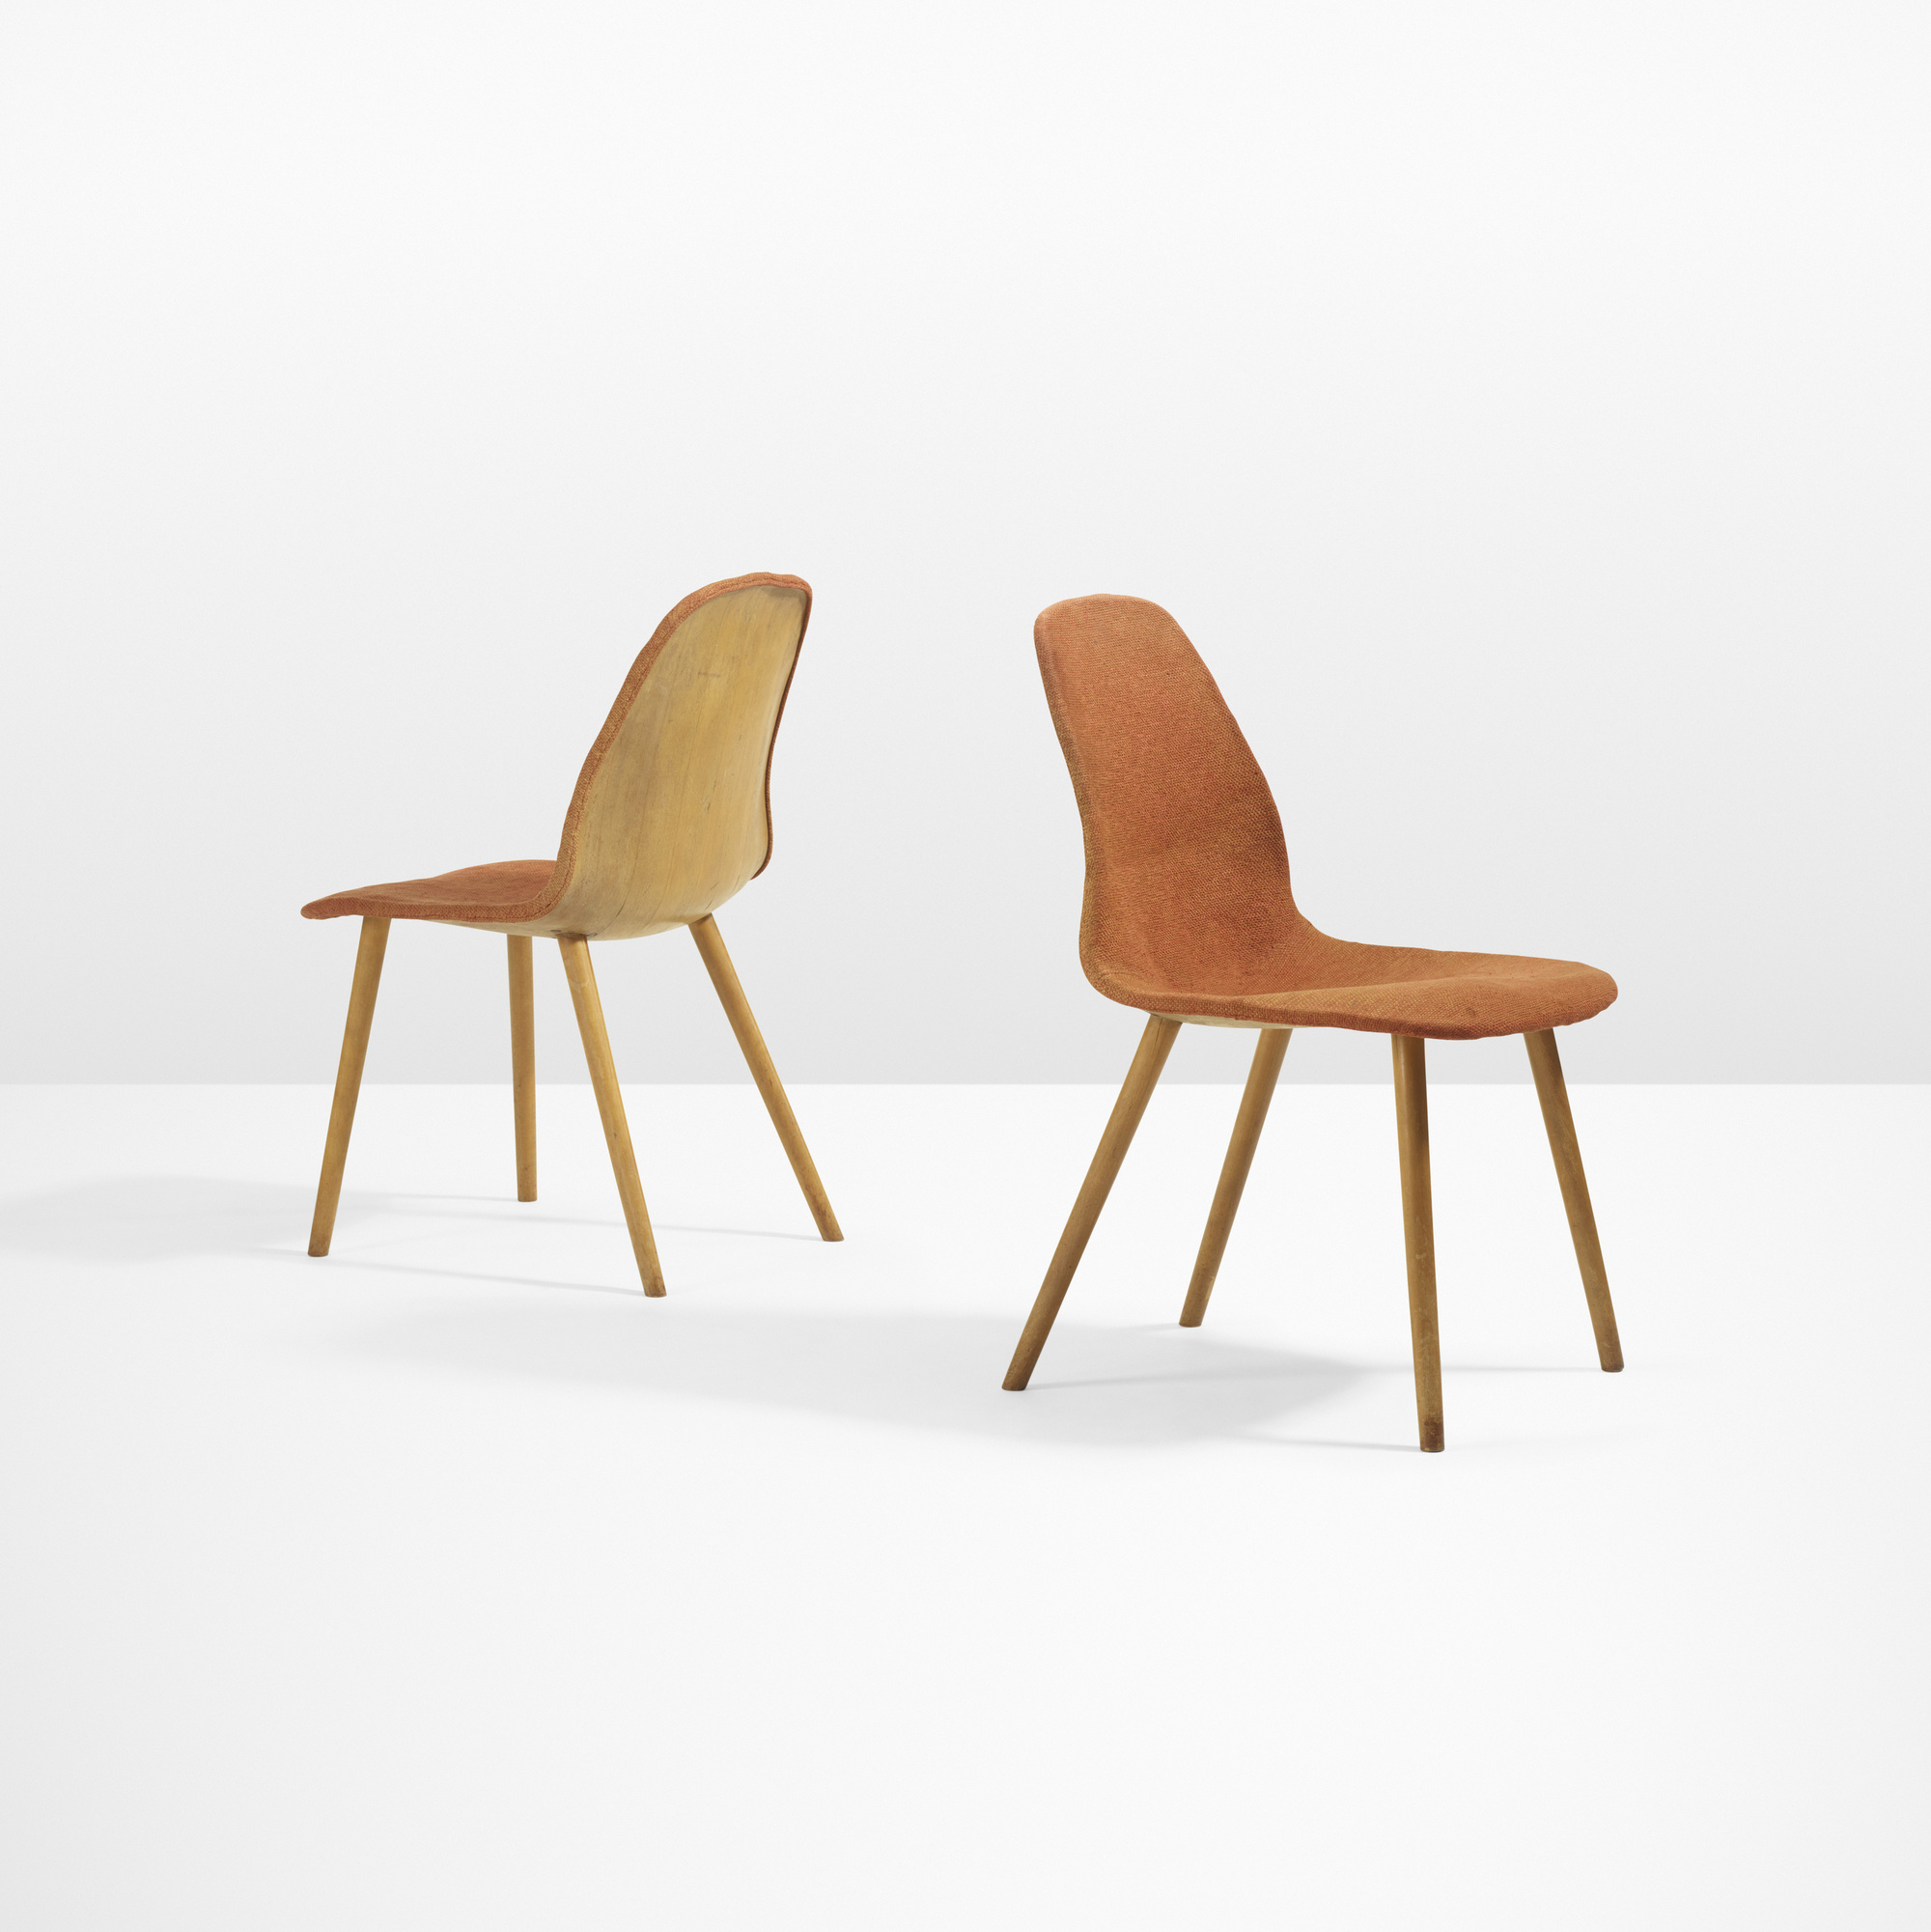 15 charles eames and eero saarinen rare pair of chairs from the organic design competition. Black Bedroom Furniture Sets. Home Design Ideas